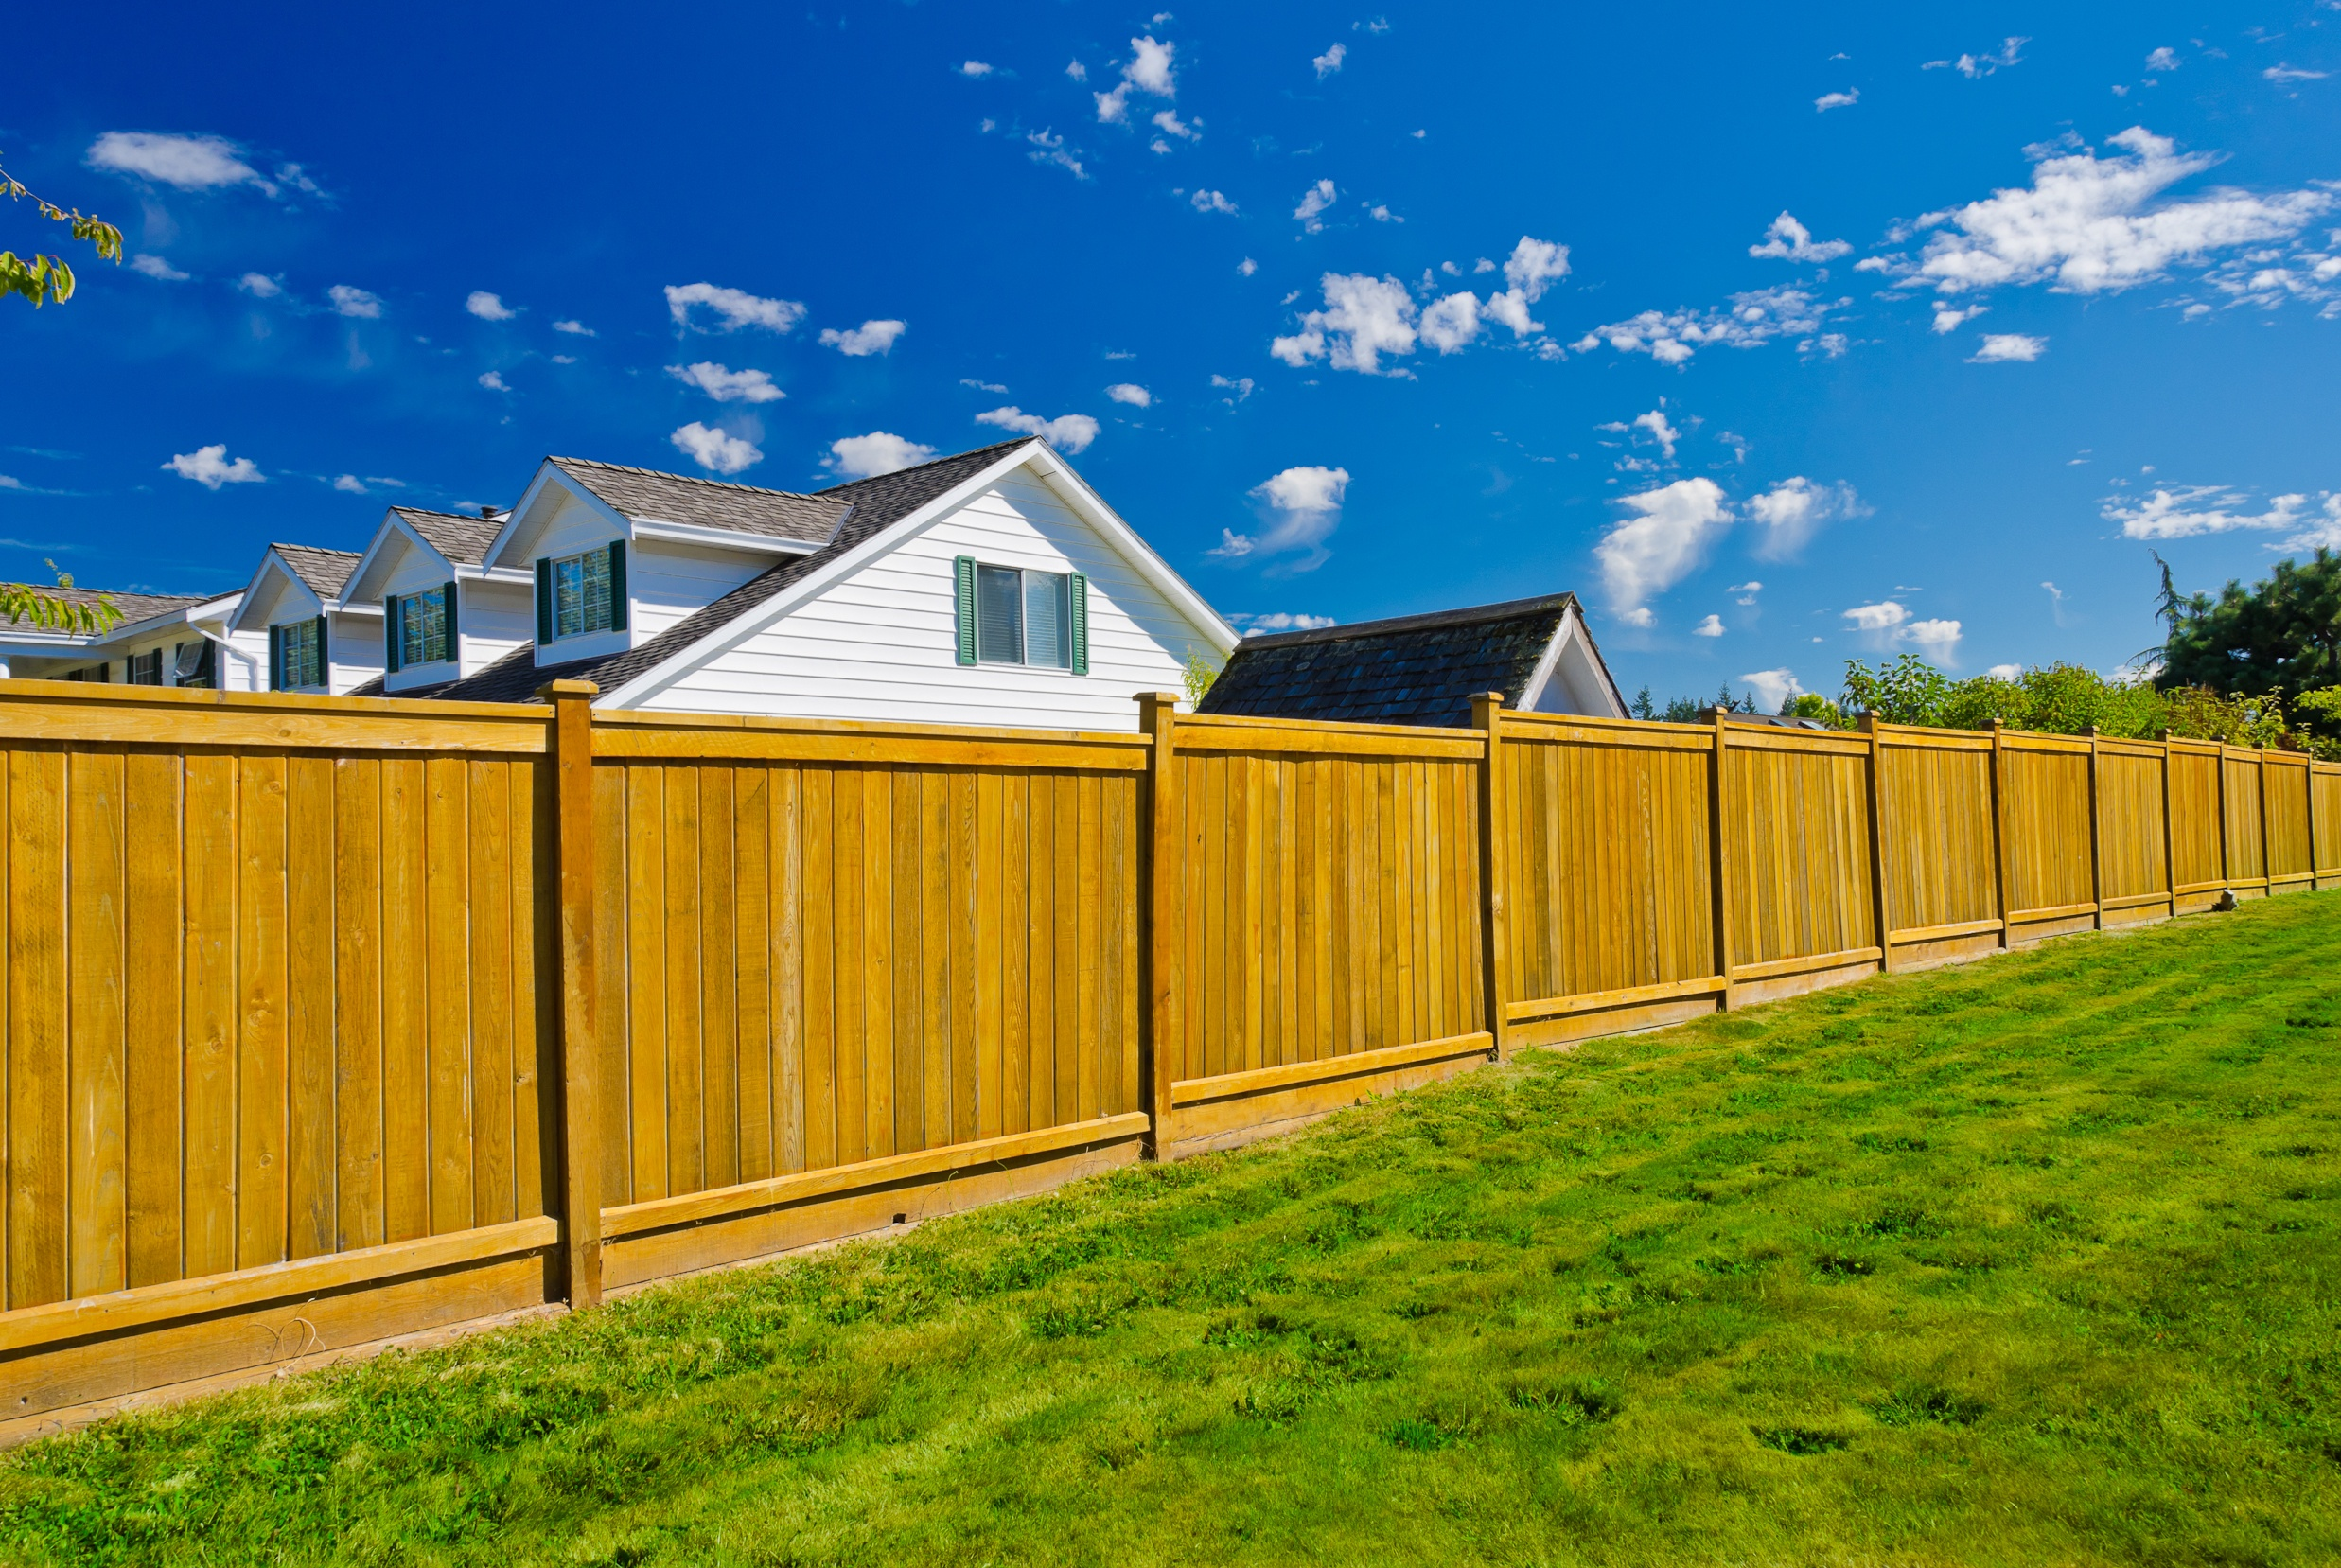 Does A Fence Increase Home Value? Here's What The Pros Say